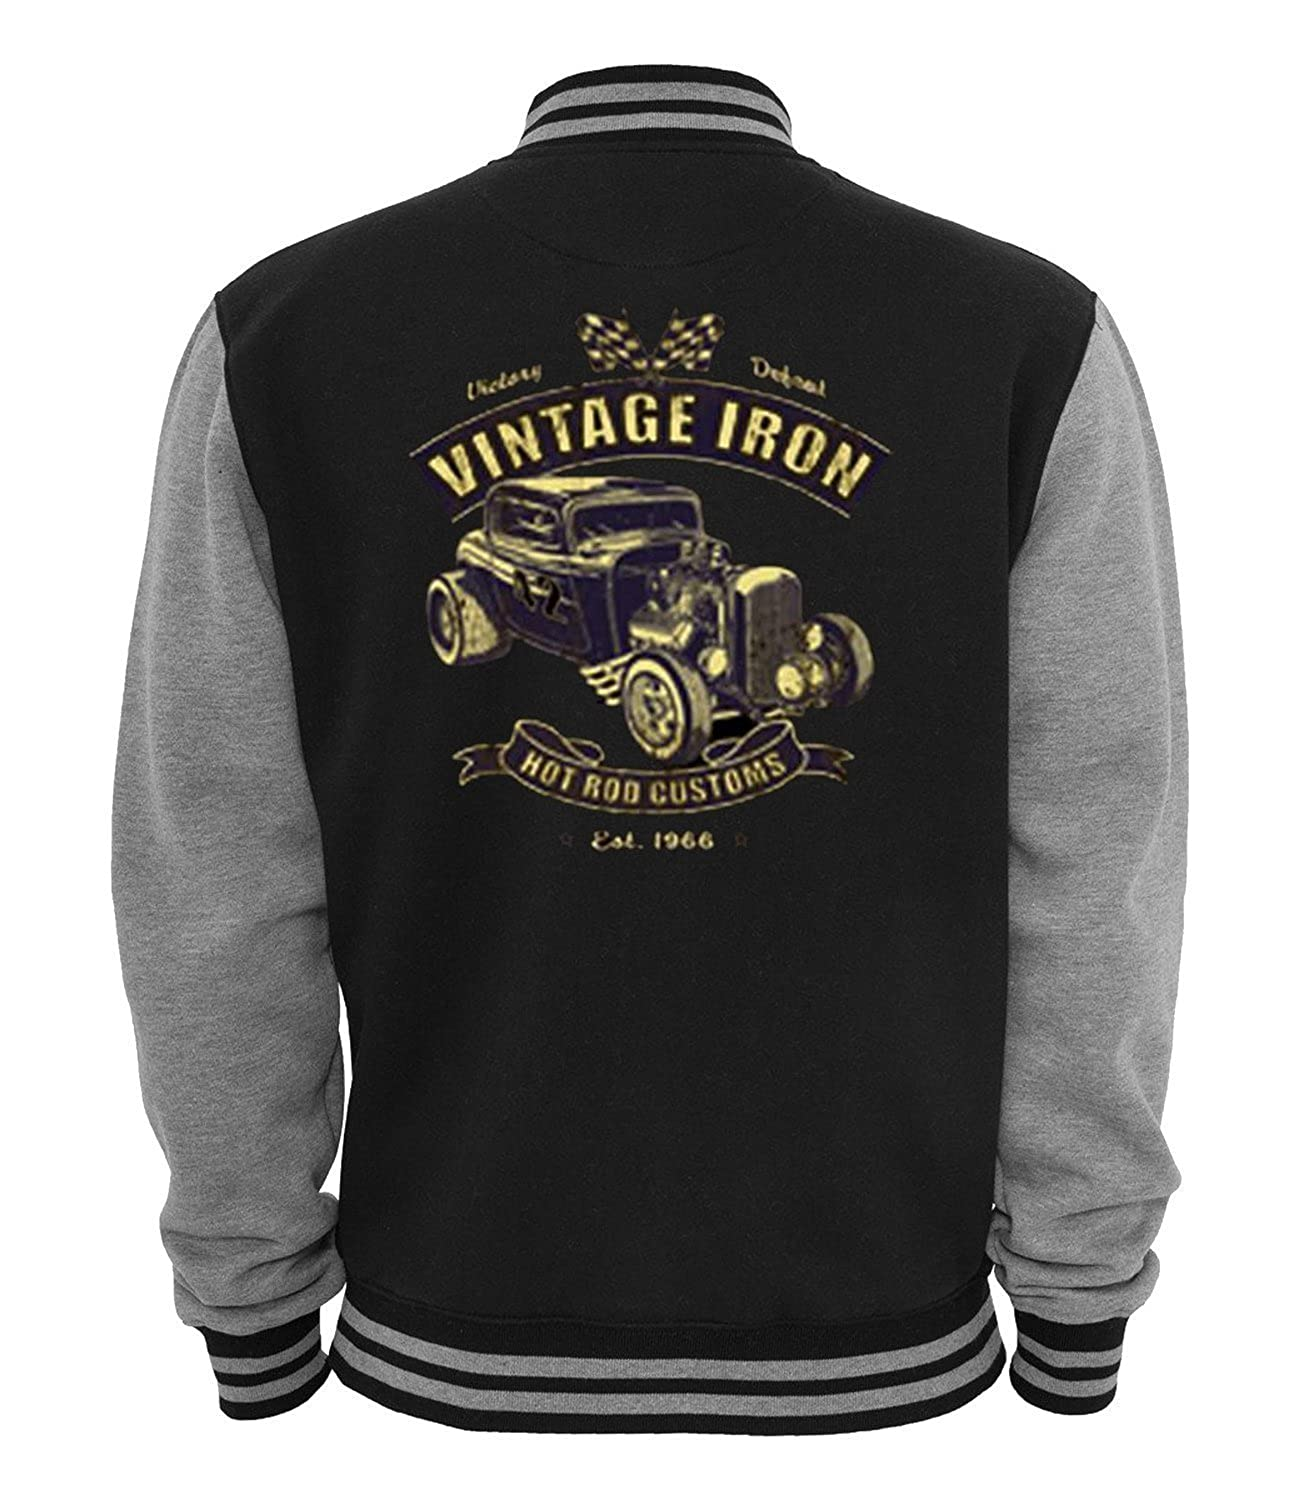 Men's Vintage Style Coats and Jackets Vintage Iron - Mens Hot Rod Varsity Jacket Old School Rockabilly Retro Style $36.50 AT vintagedancer.com